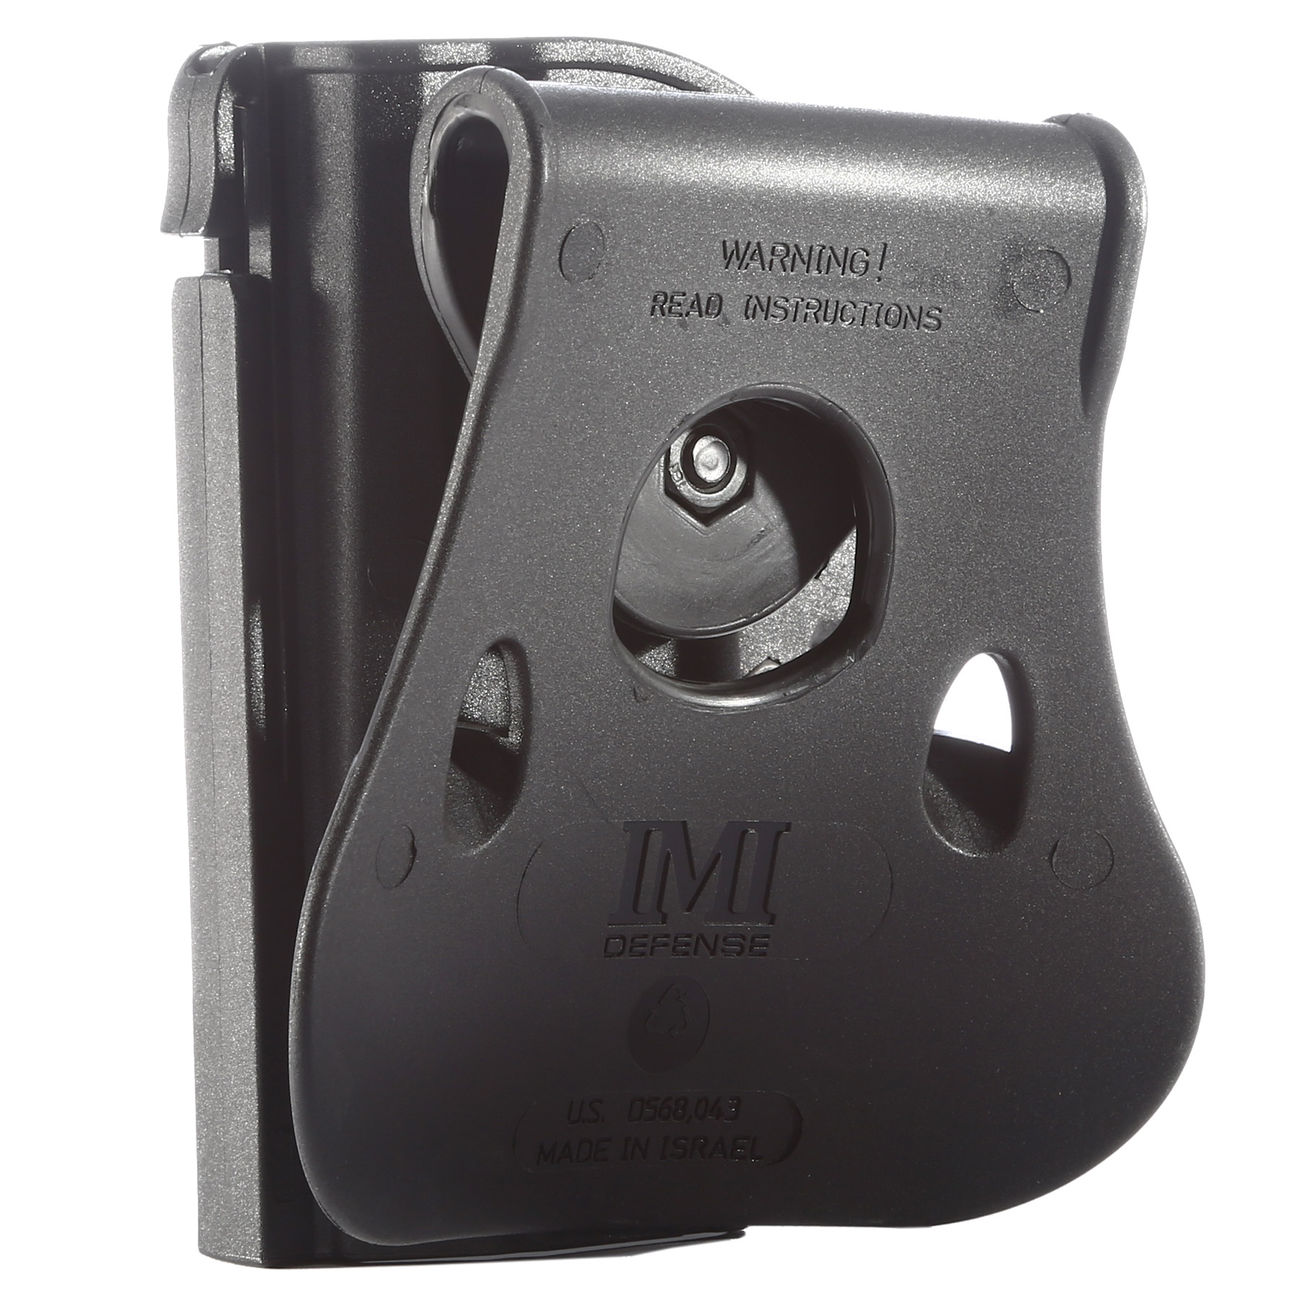 IMI Defense Level 2 Holster Kunststoff Paddle für CZ P-07 schwarz 1